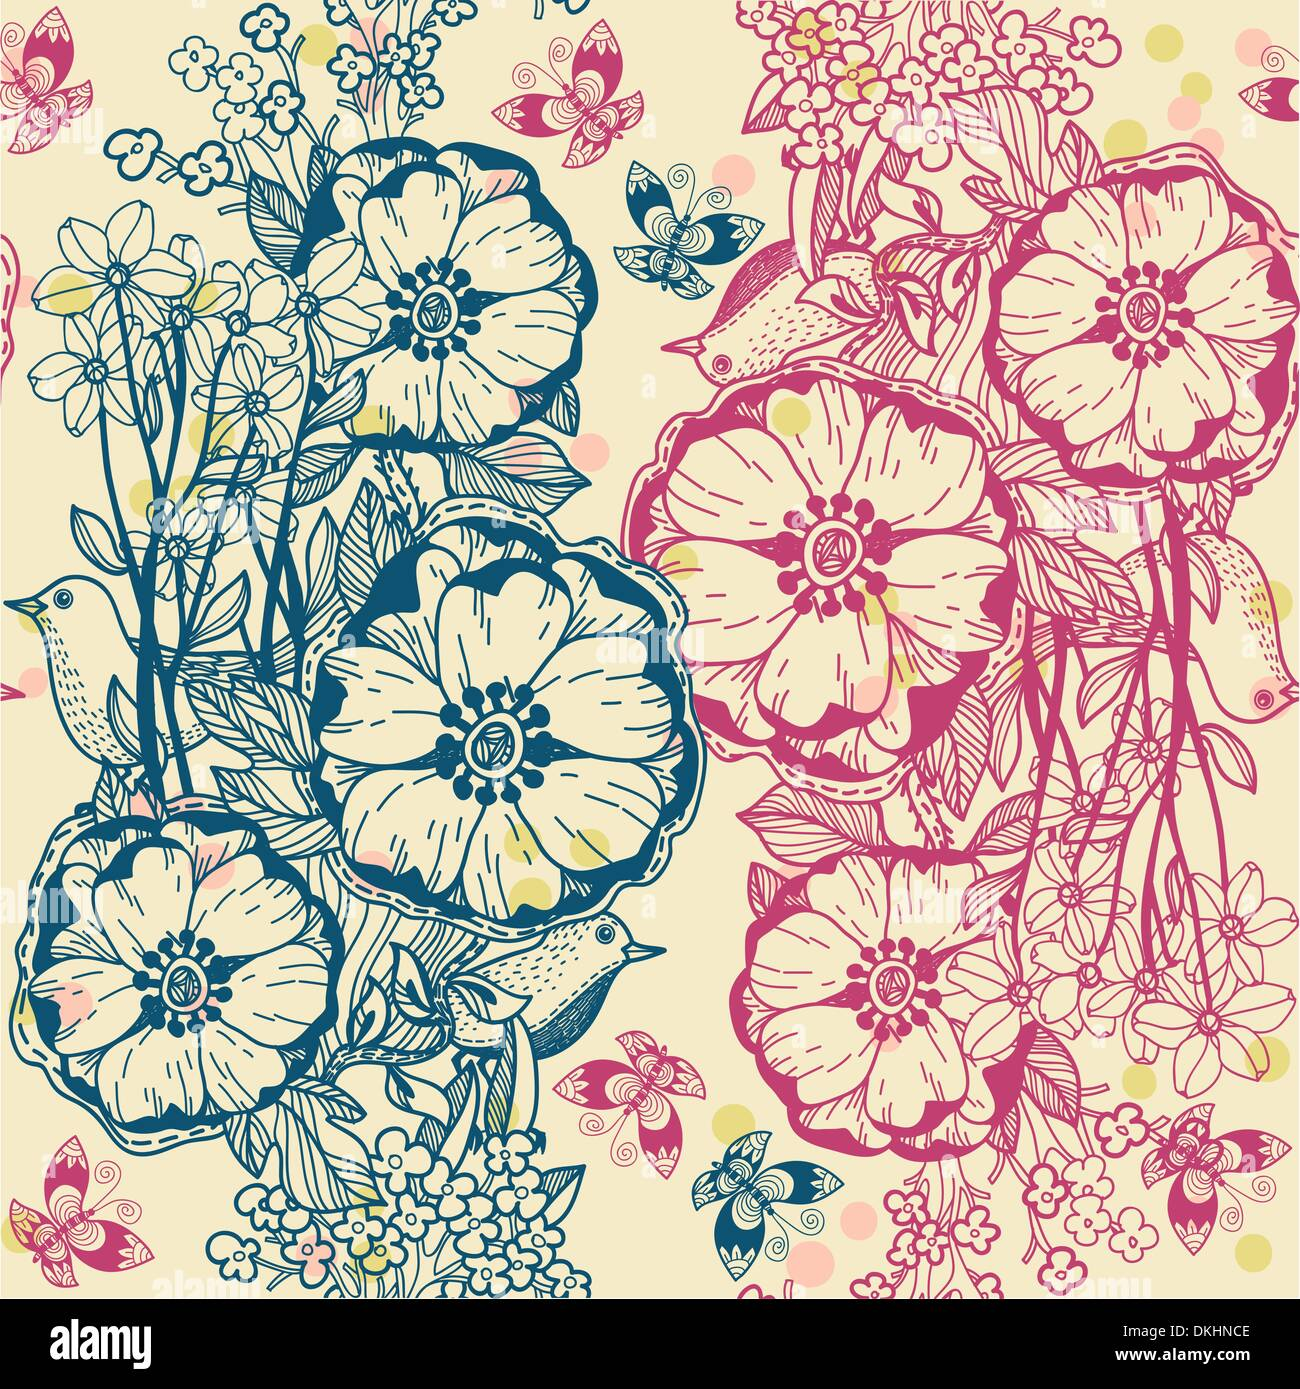 vector floral seamless pattern - Stock Image